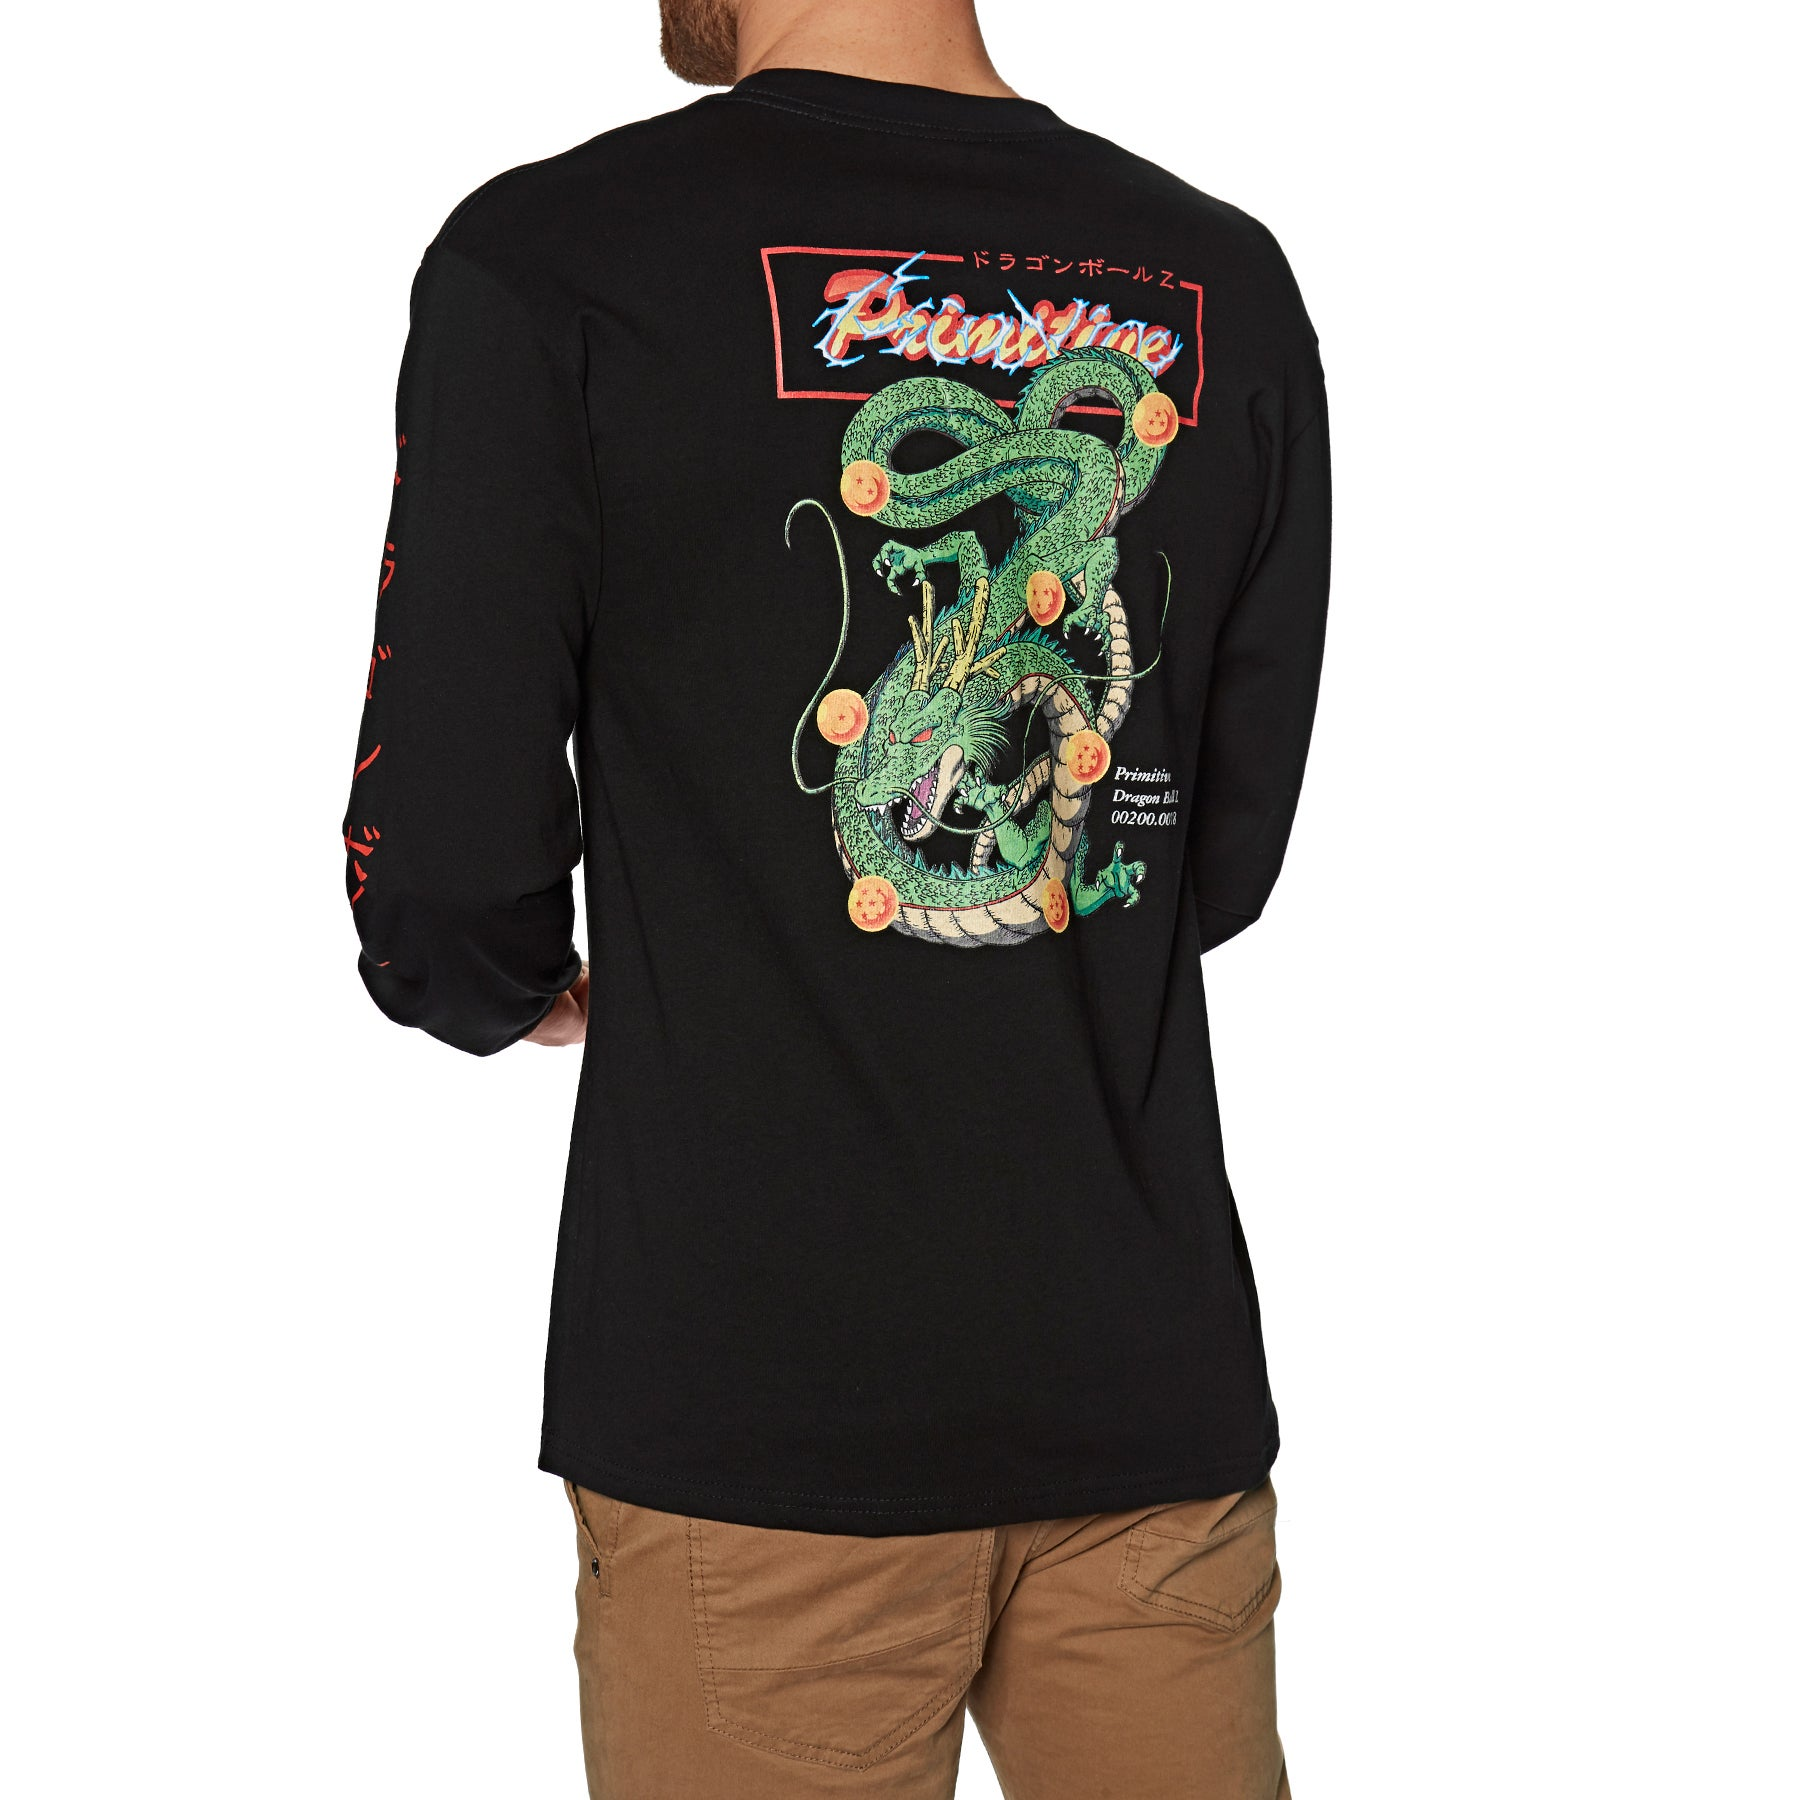 Camiseta de manga larga Primitive Shenron Club Intl - Black